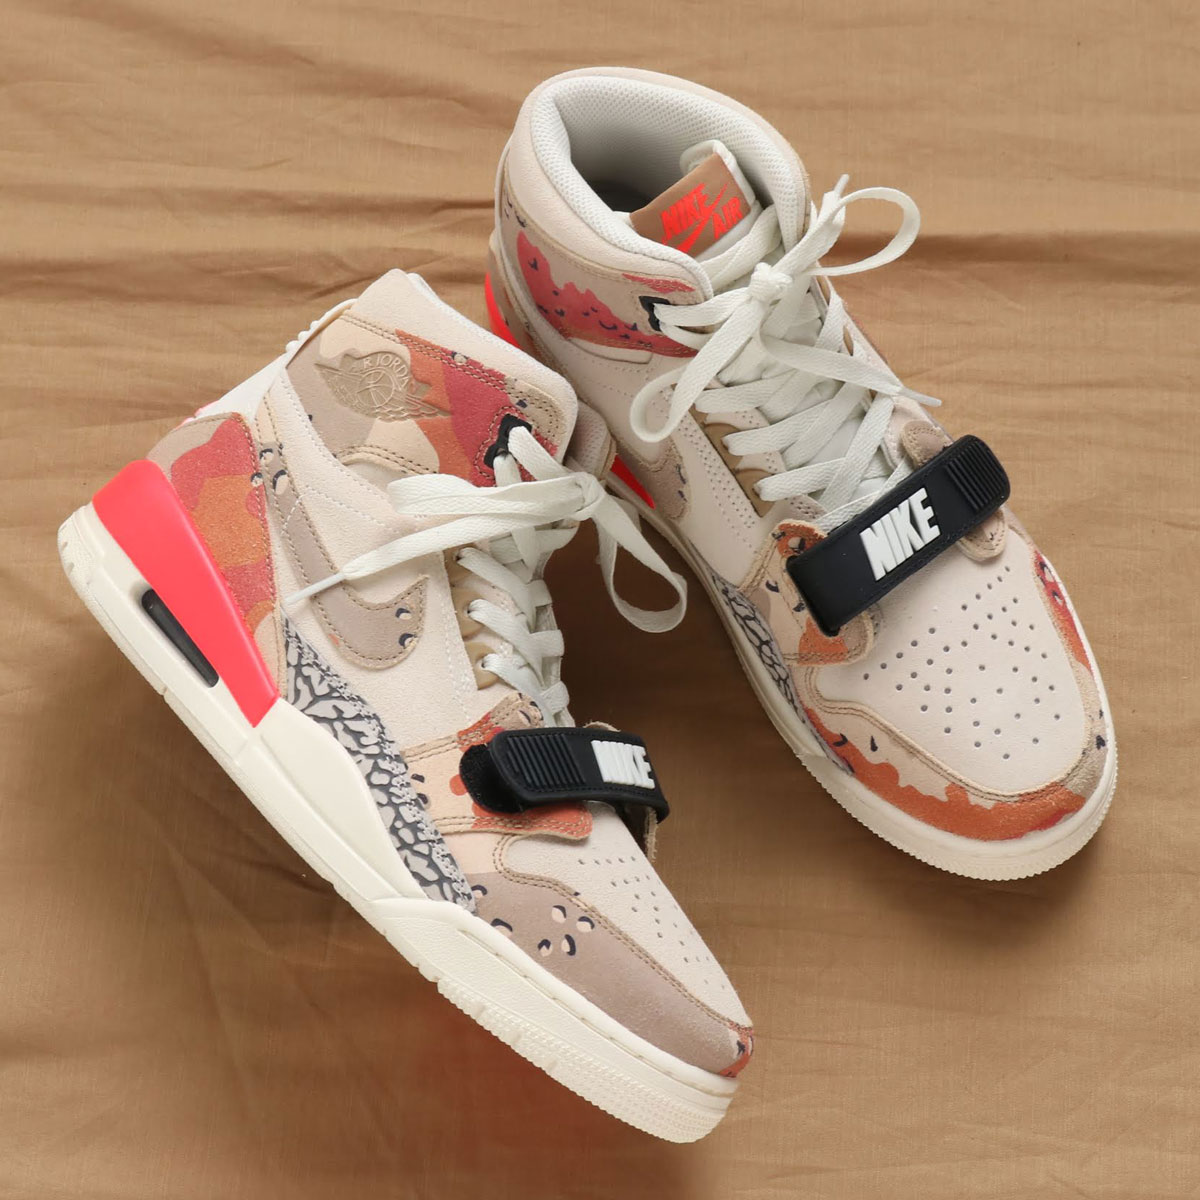 9632e655 Clothing, Shoes & Accessories Nike Air Jordan Legacy 312 Shoes  Sneakers-Sail/Desert Camo/Infra Red AV3922-126